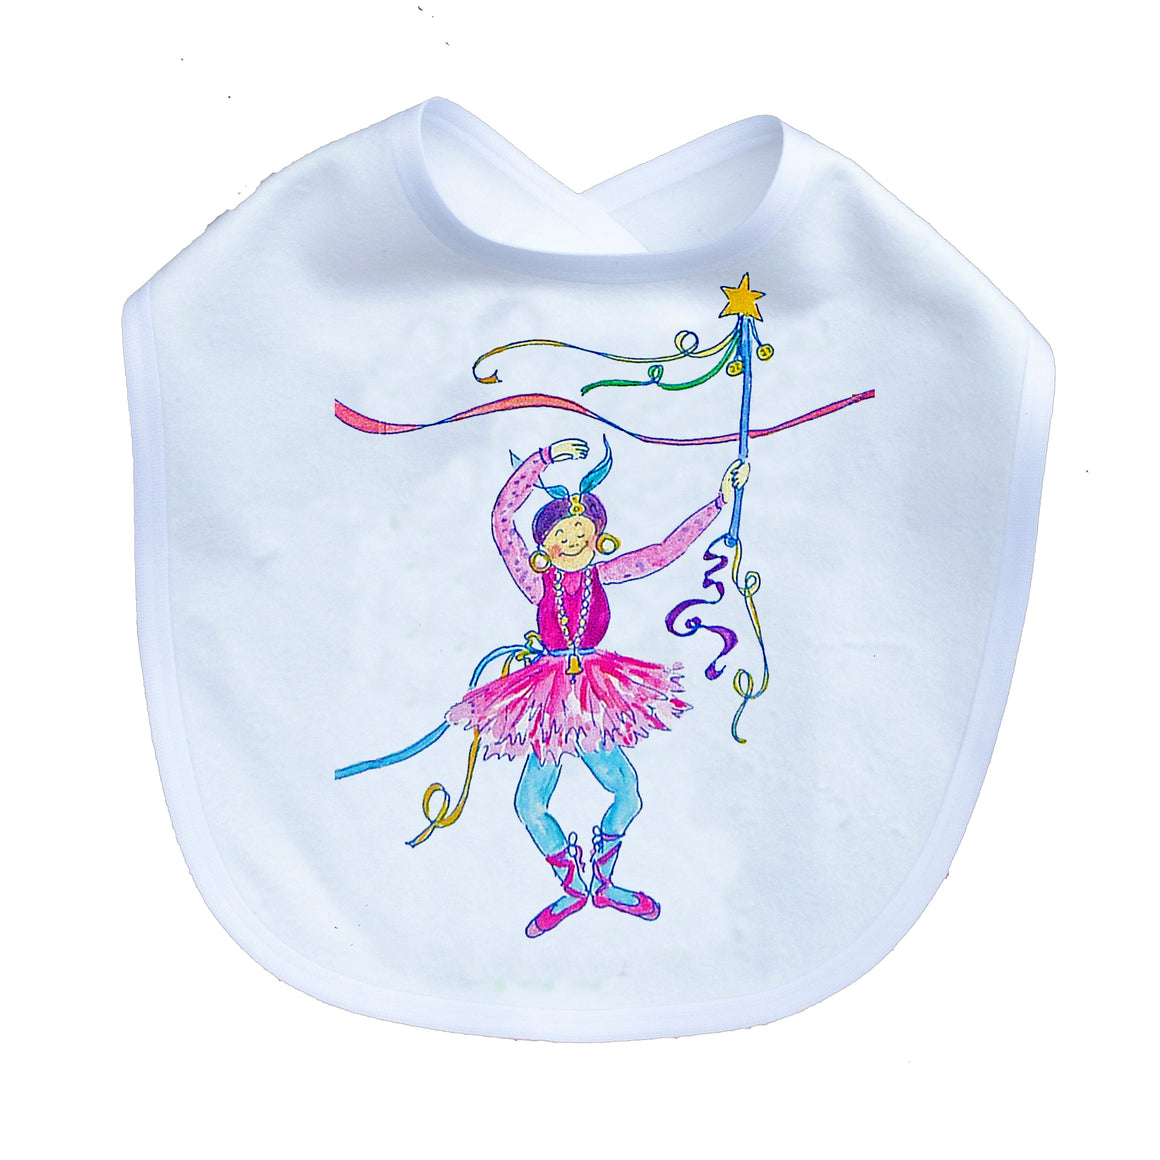 Sillybilly Dancer Infant Bib